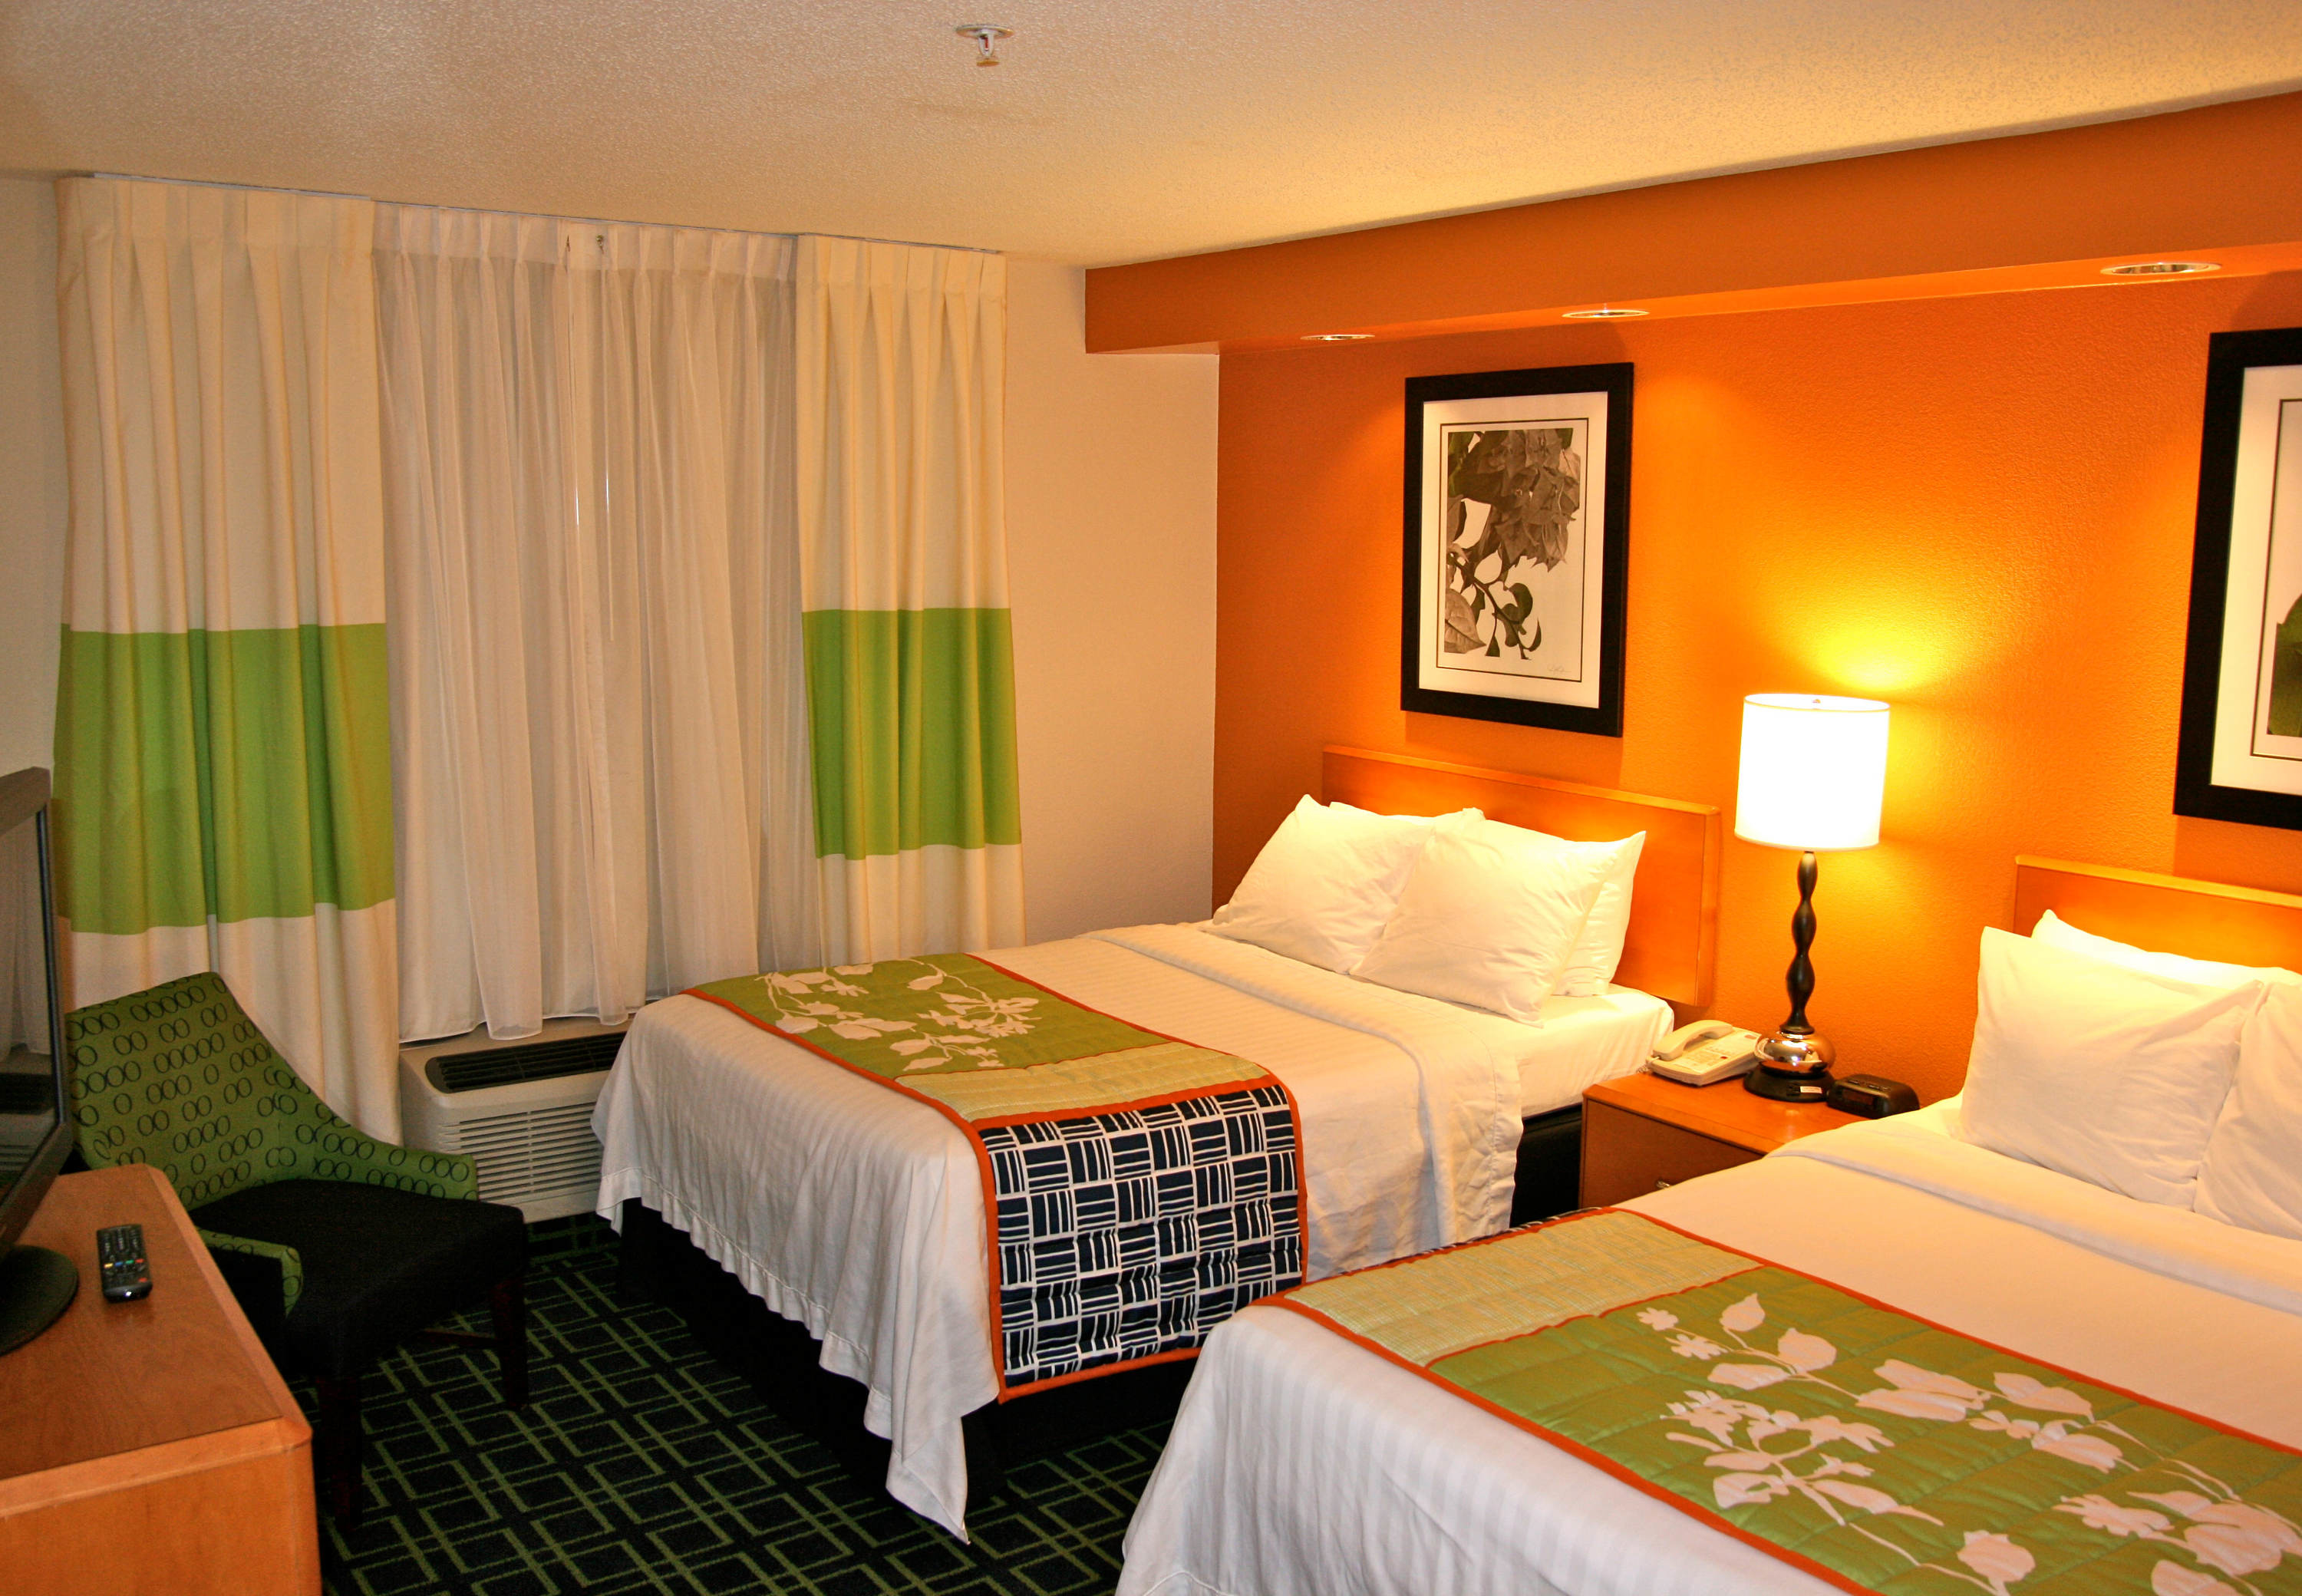 Fairfield Inn & Suites by Marriott Youngstown Austintown image 2